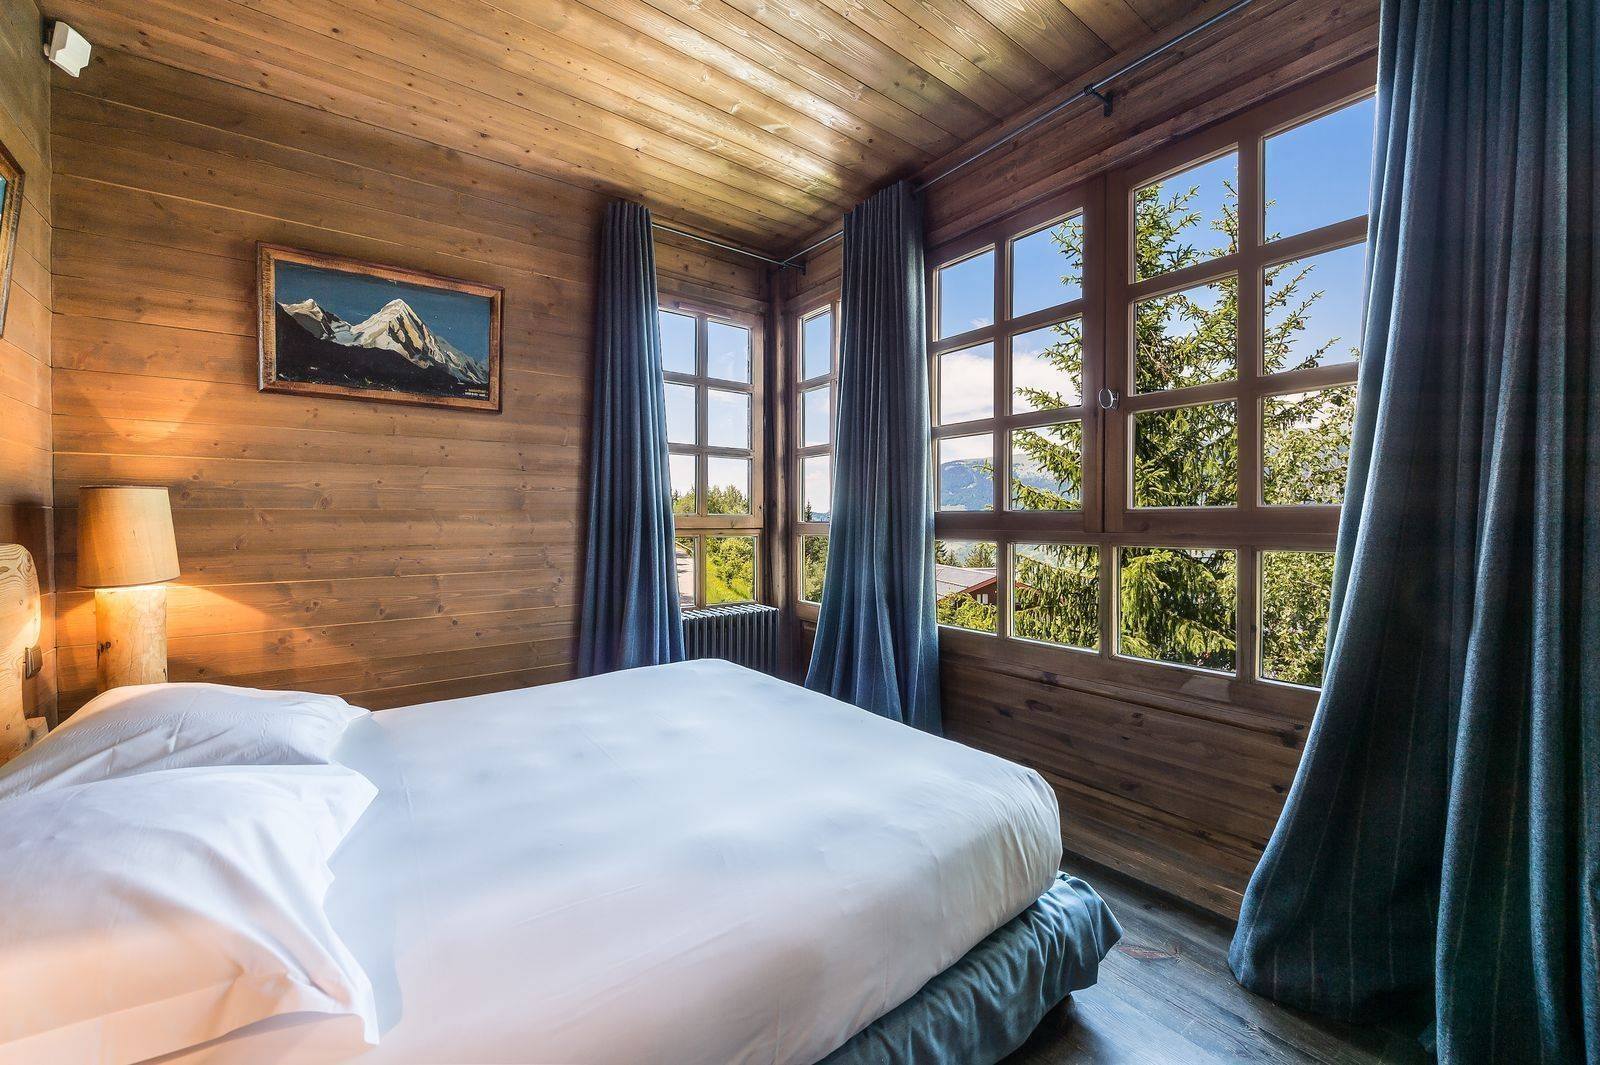 Courchevel 1550 Location Chalet Luxe Tazoy Chambre 3